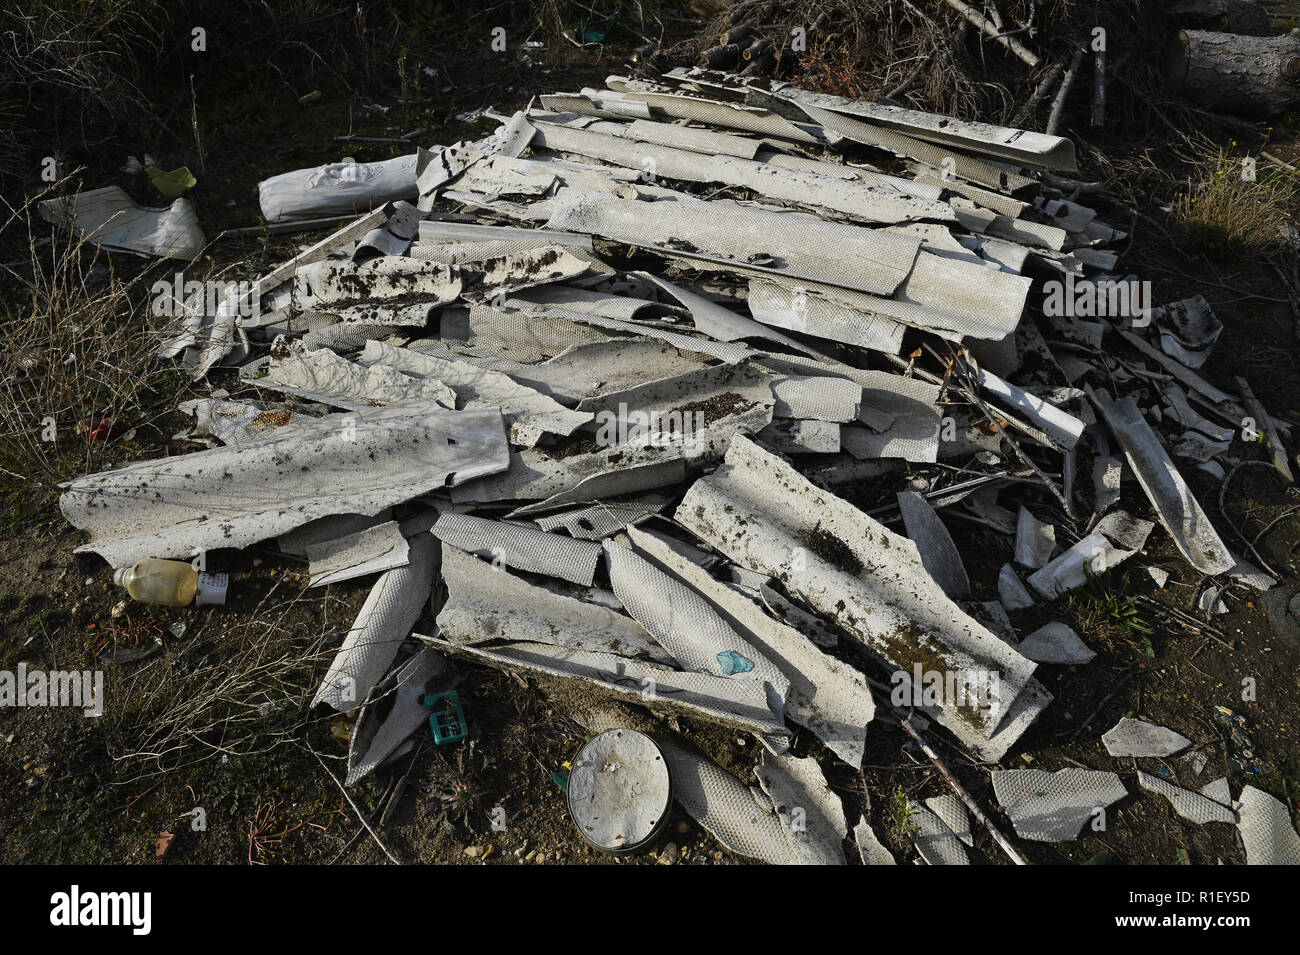 Asbestos waste on Uncontrolled Landfill - Carrières sous Poissy - France - Stock Image